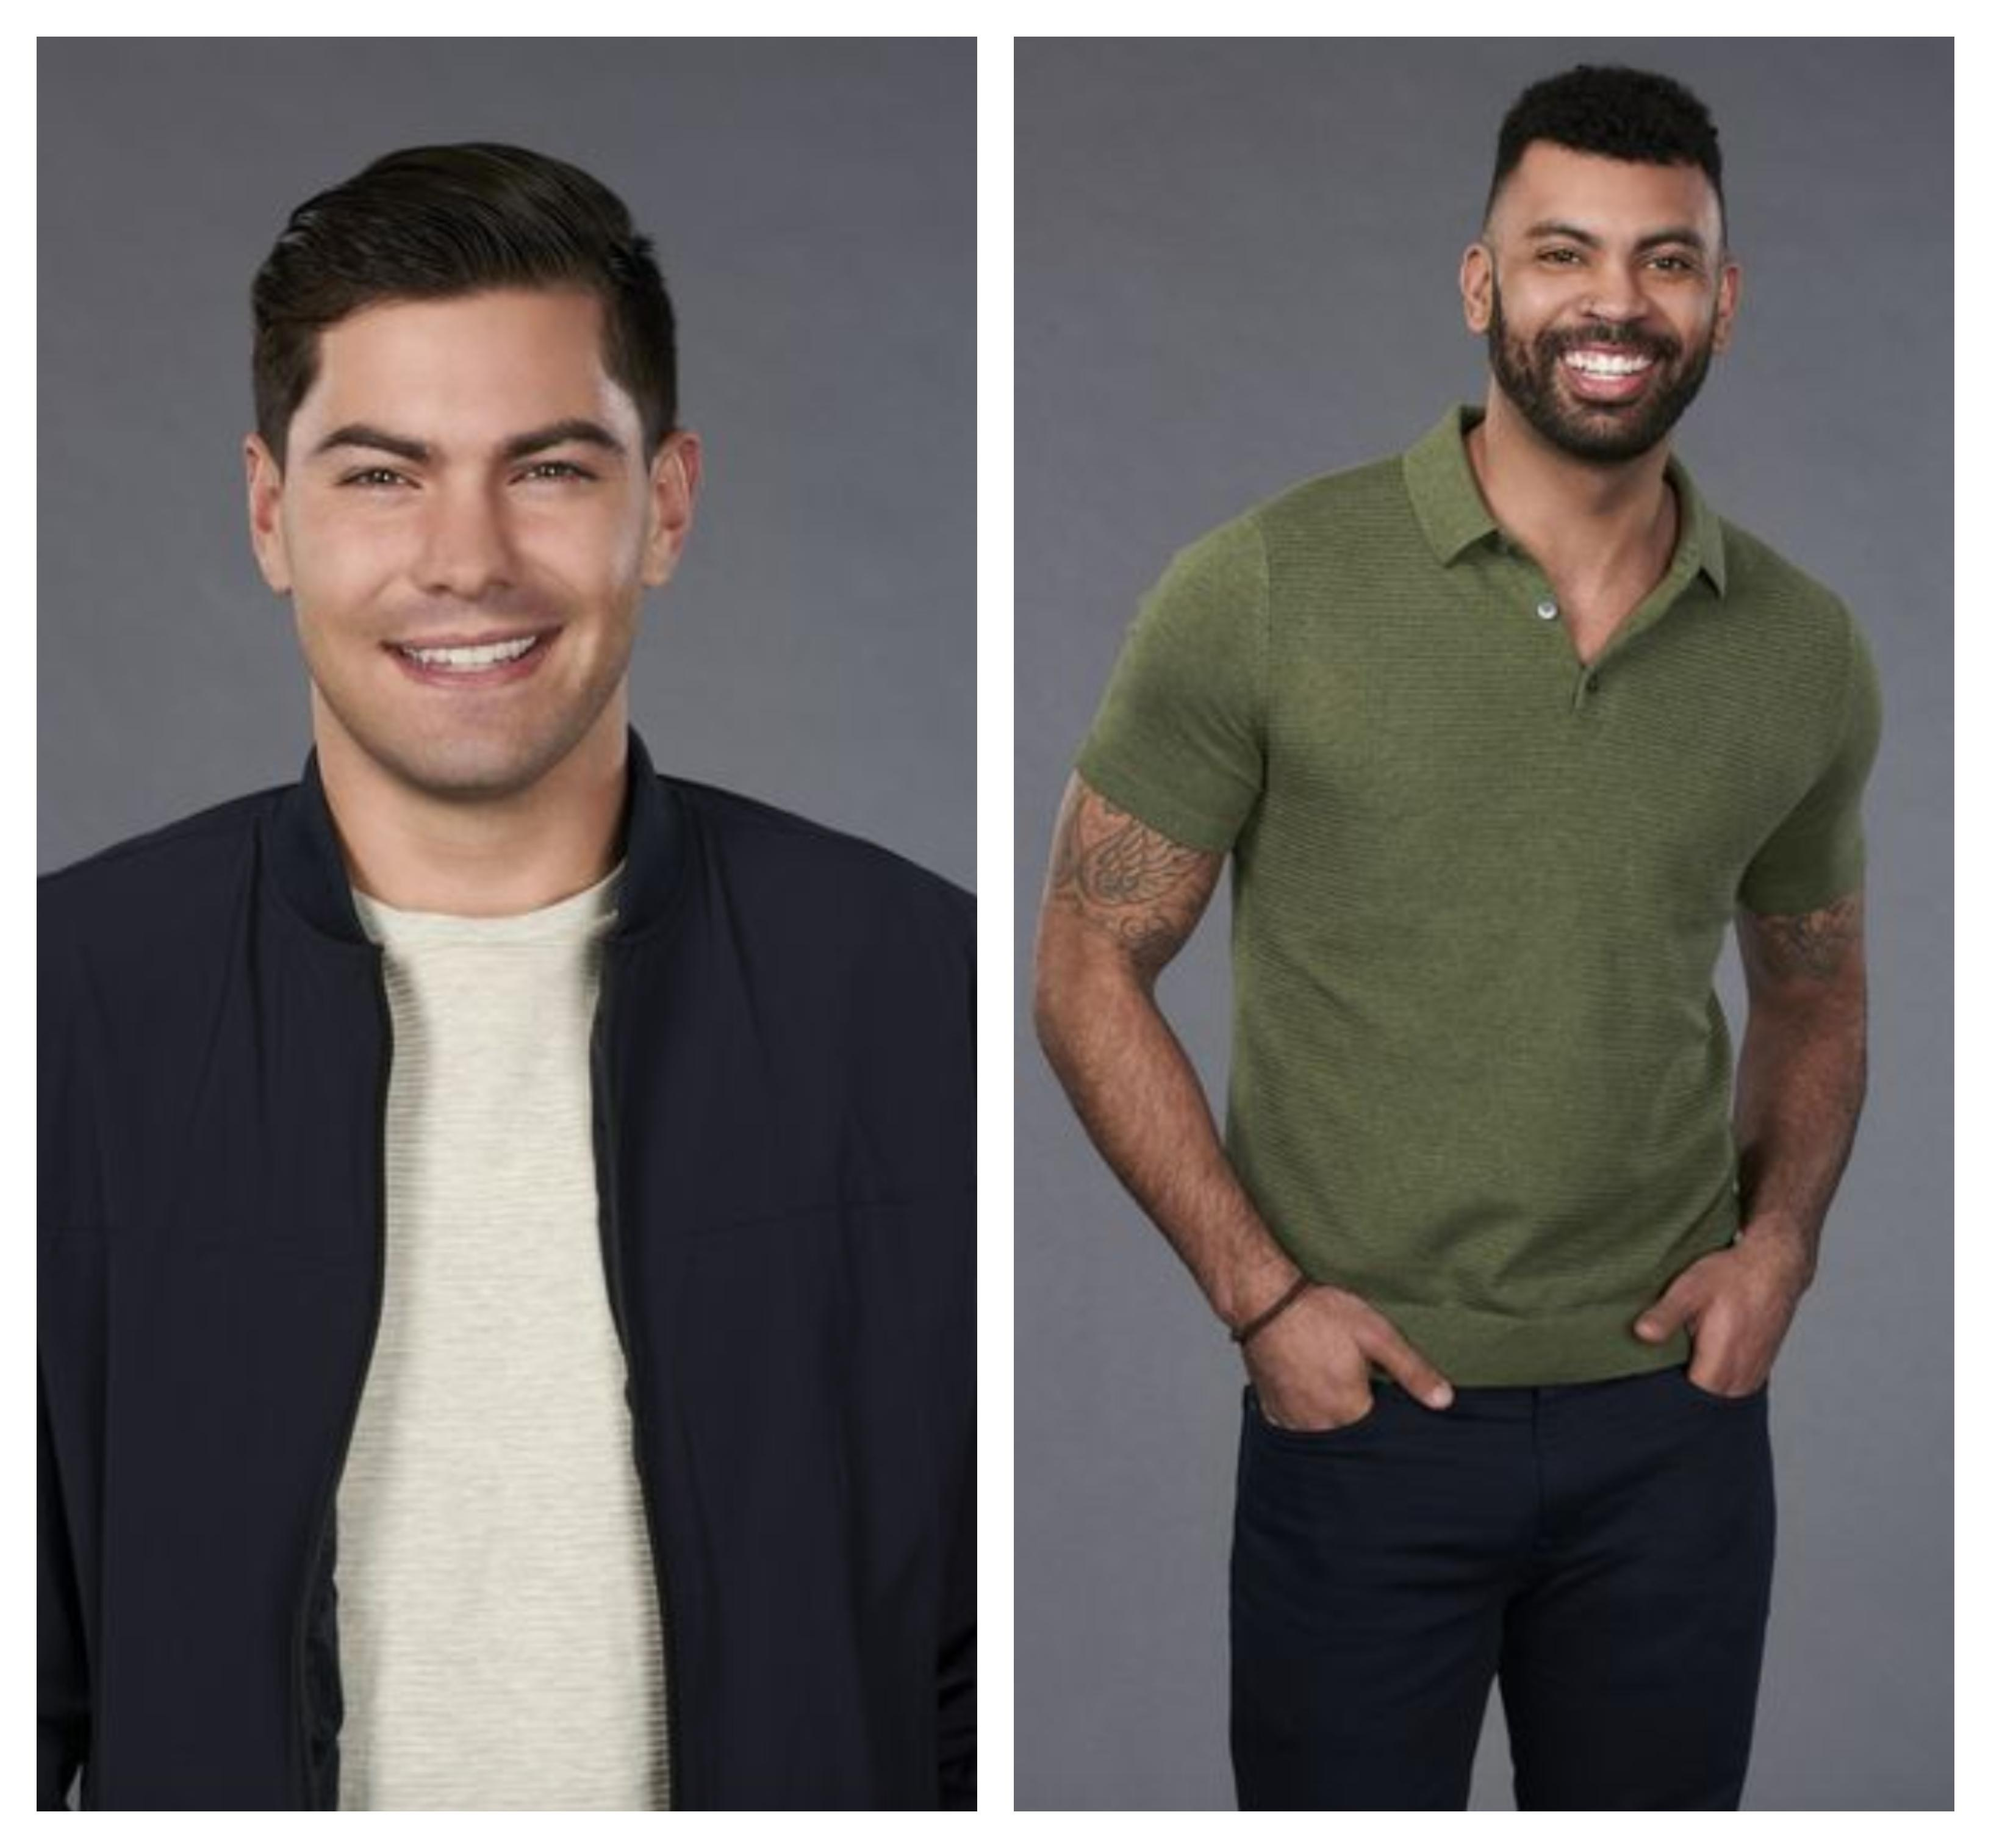 Preview Of What The Bachelorette Contestants Look Like: 'The Bachelorette' 2019 Spoilers: What Happens In Episode